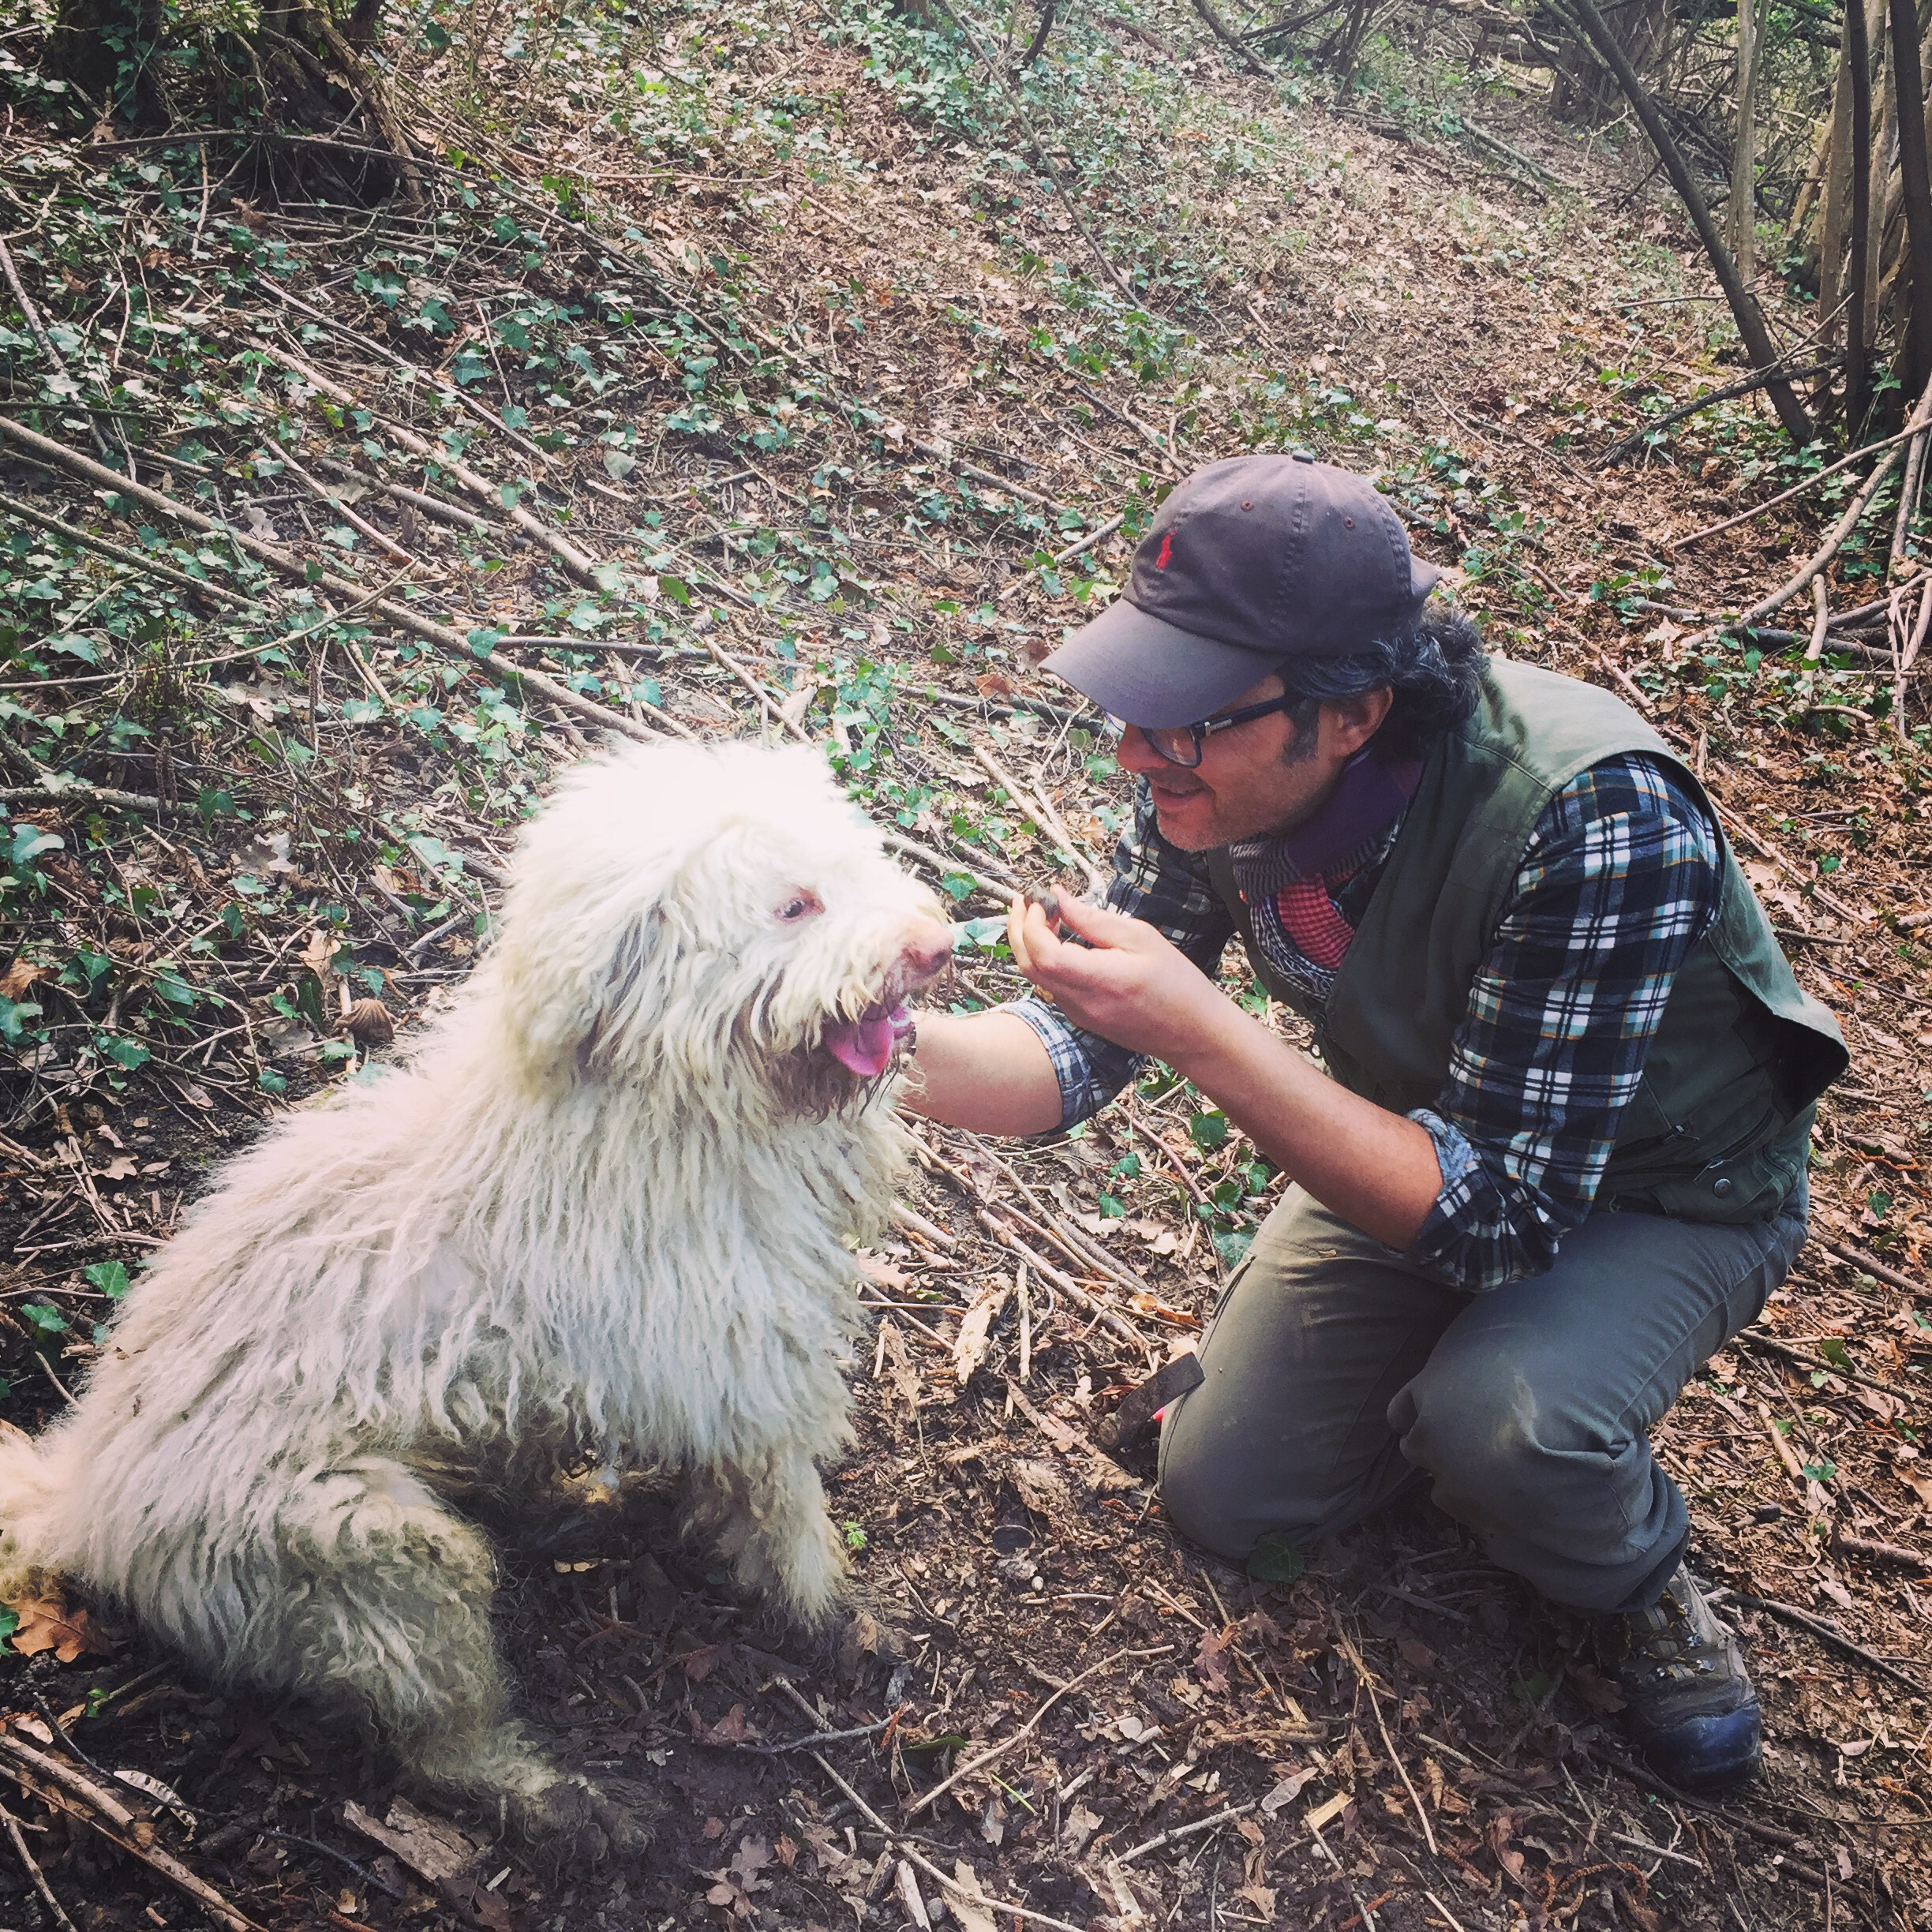 Meet Giueseppe - a local truffle hunter - and his dog Luna